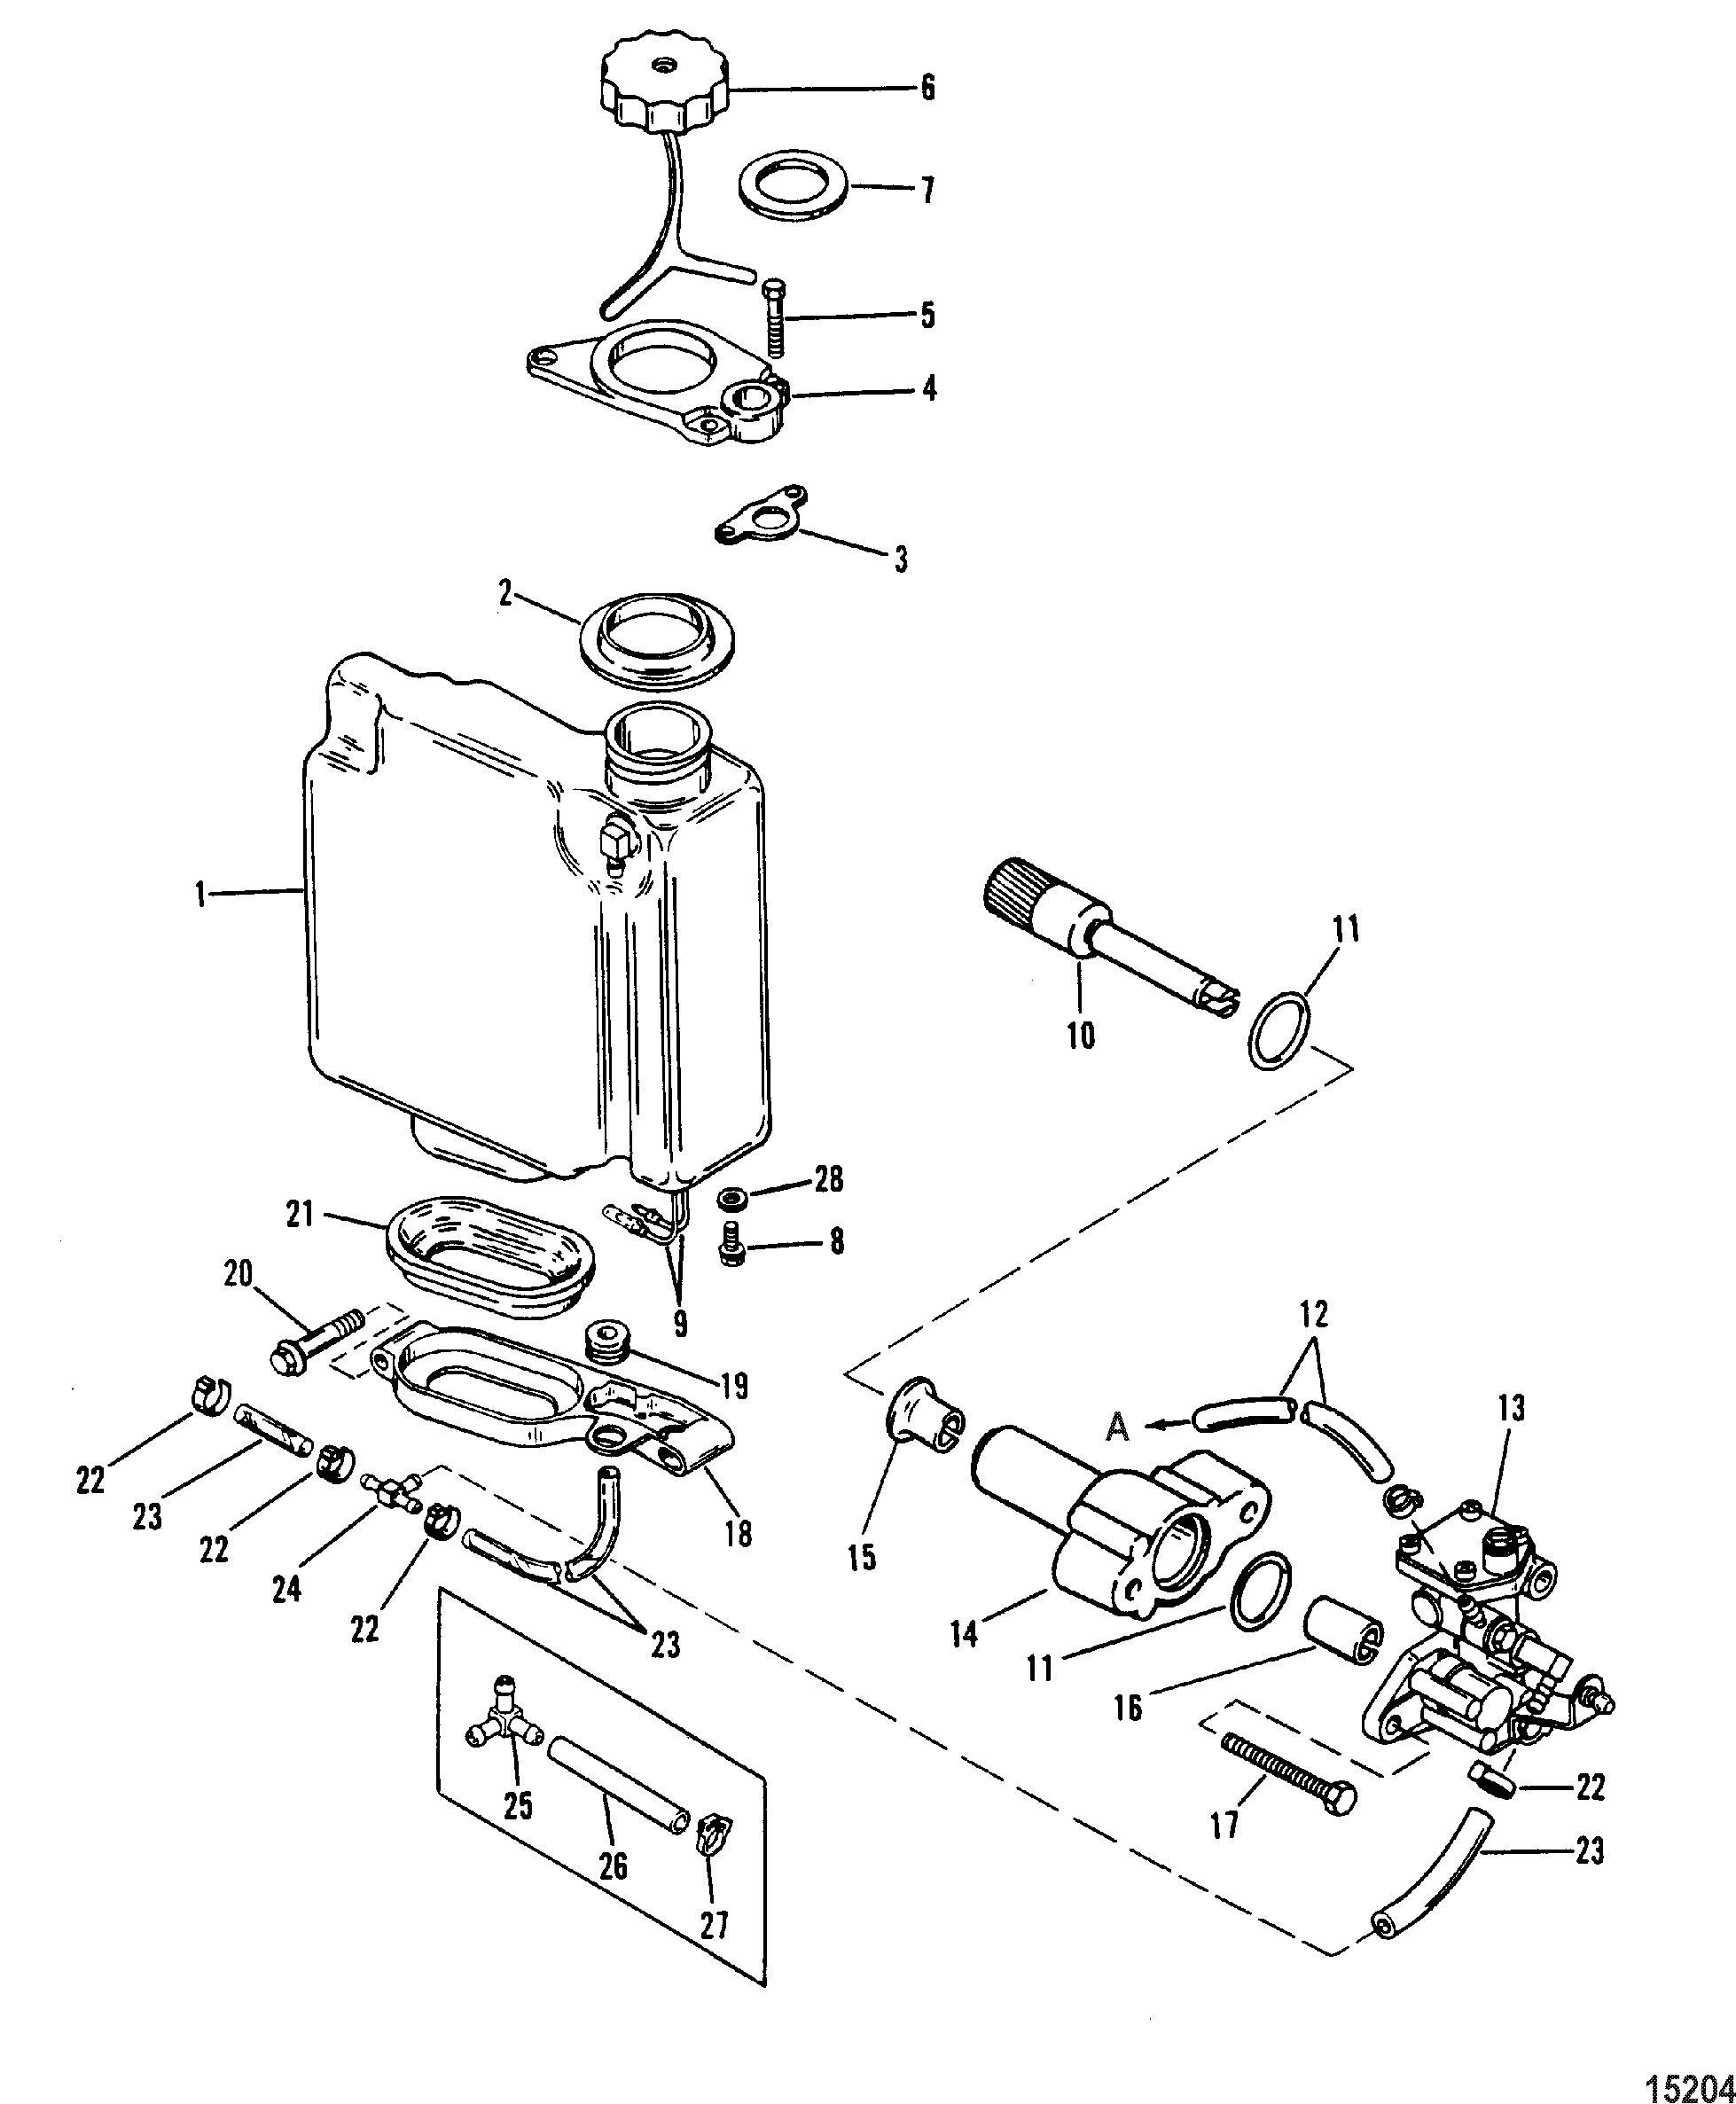 Diagram Of Mercury Outboard Motor